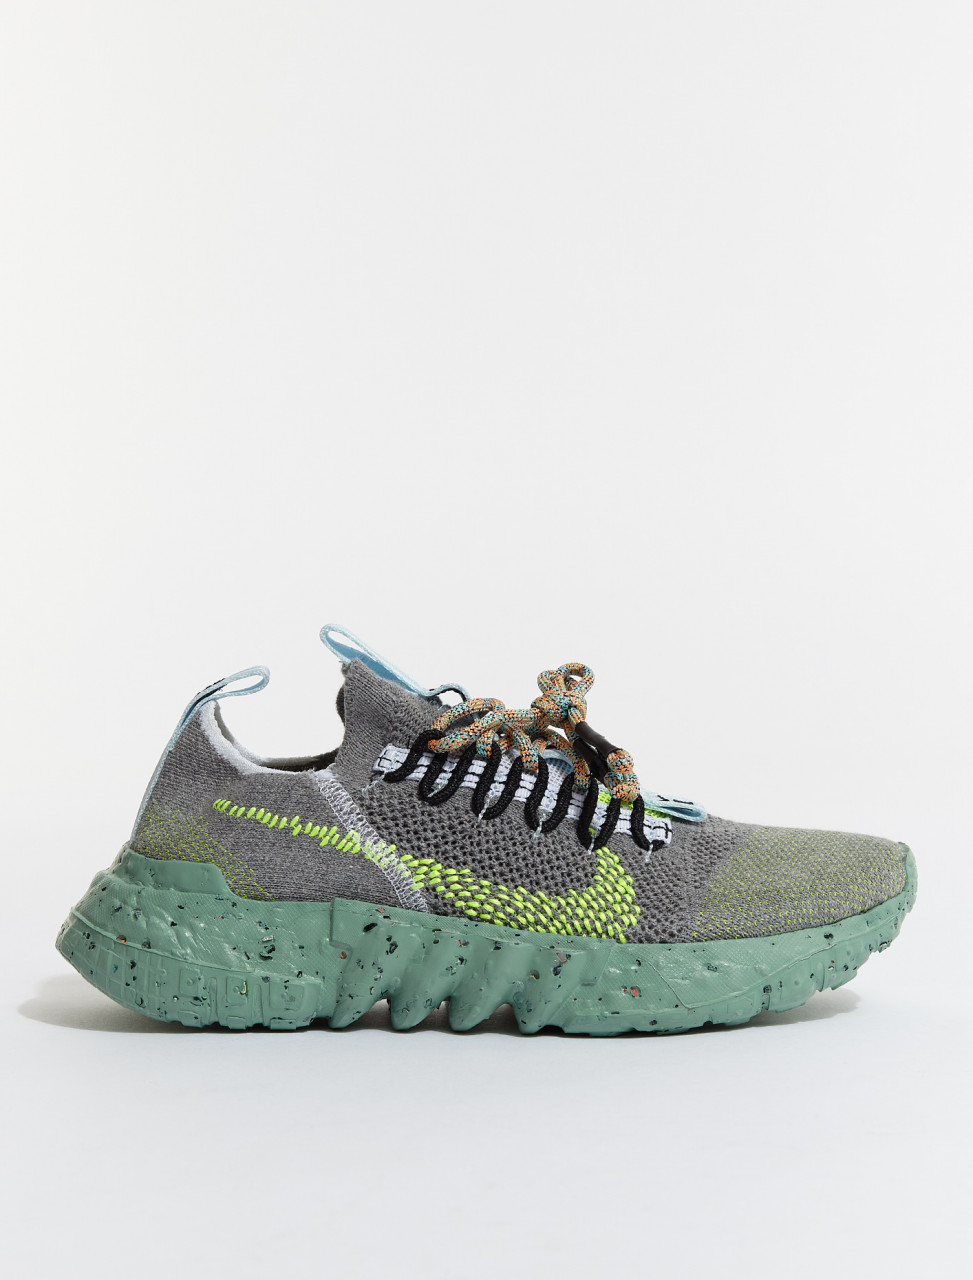 DJ3056-002 NIKE SPACE HIPPIE 01 IN WOLF GREY